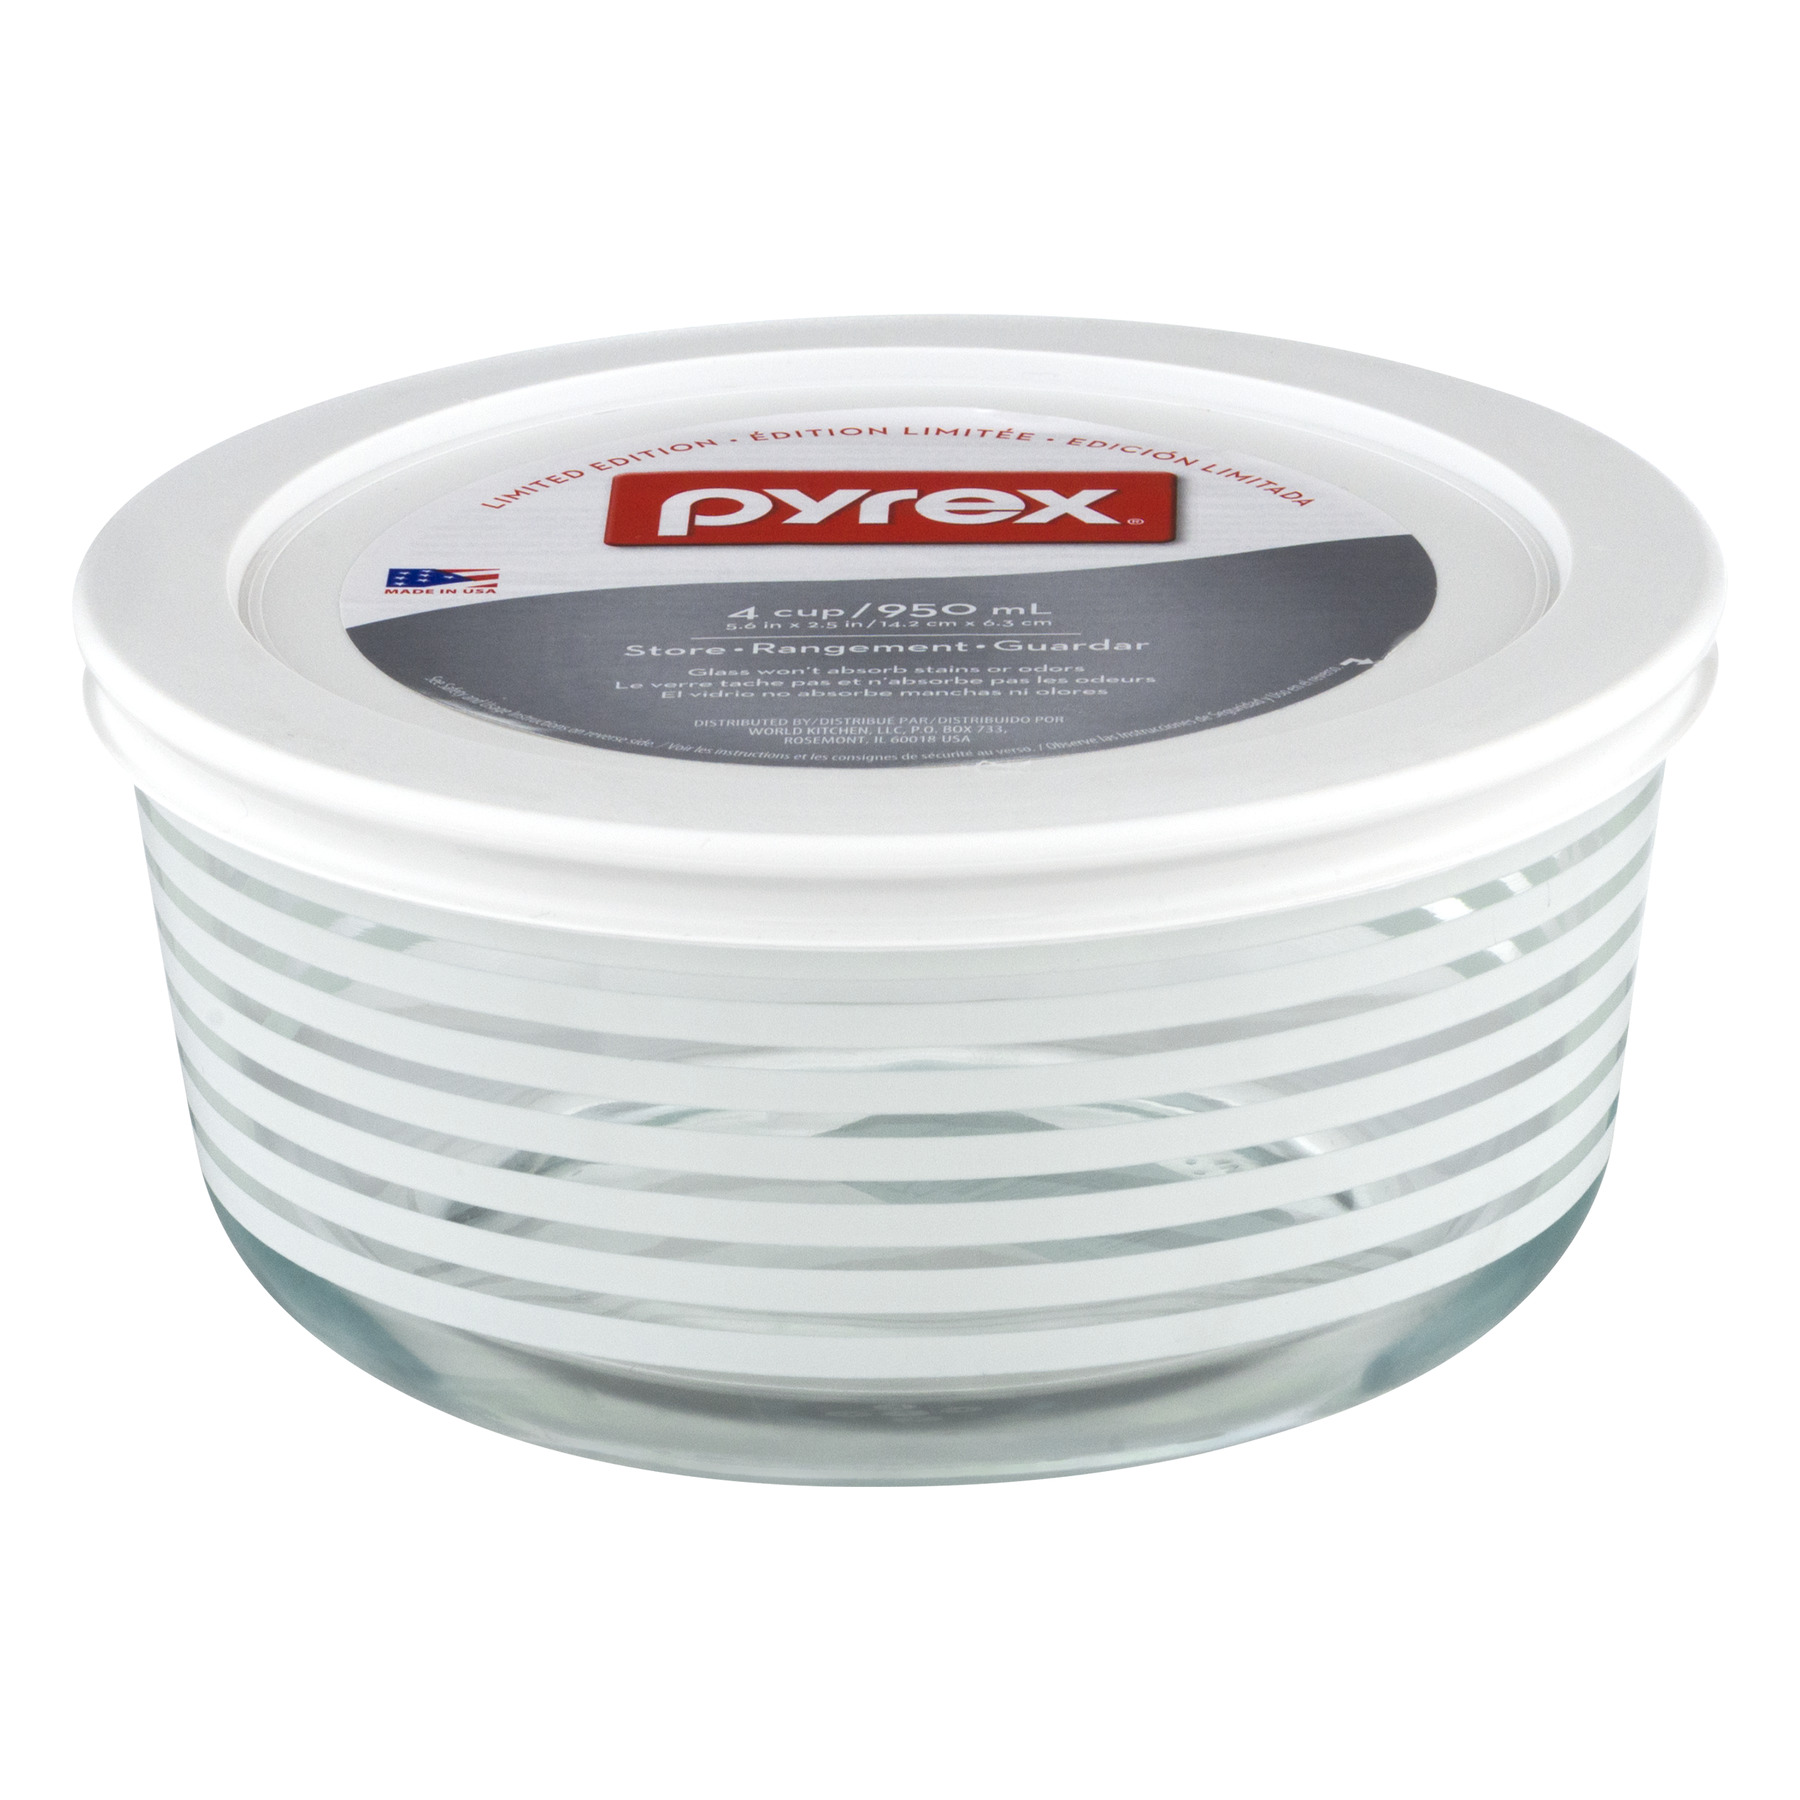 Pyrex 4 Cup Storage Dish With Lid, 1.0 CT